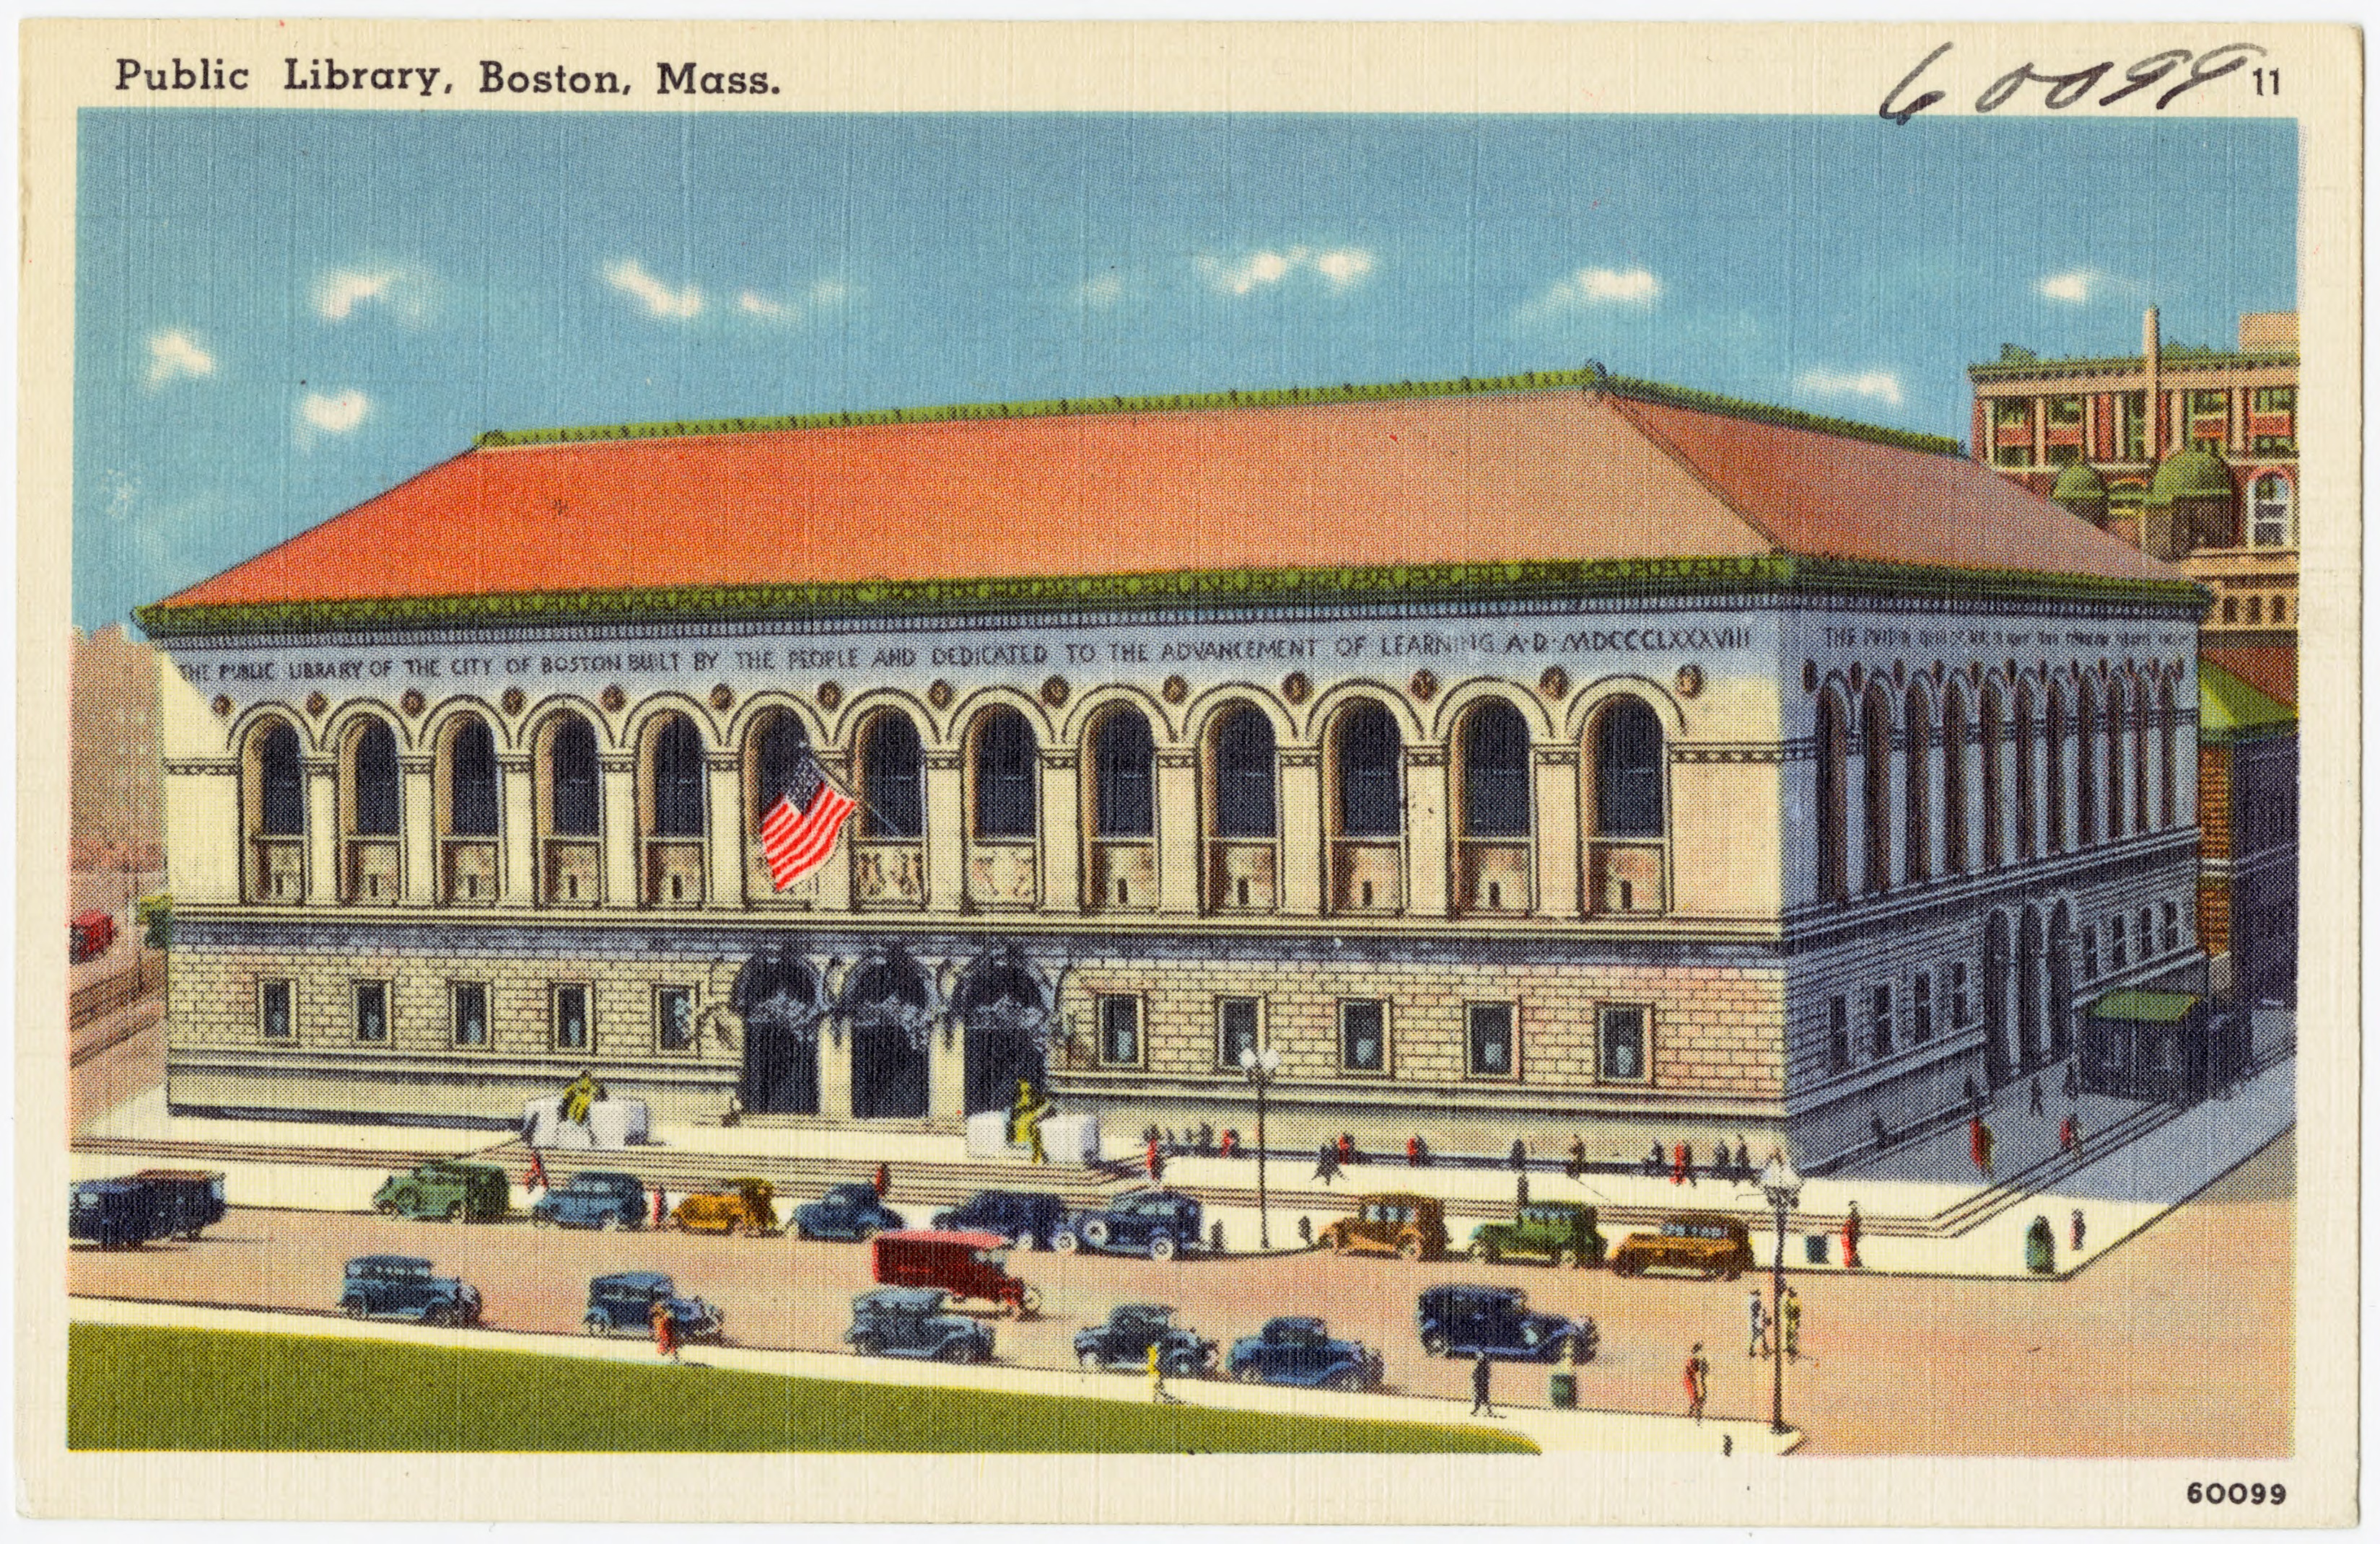 postcard featuring an illustration of the Boston Public Library